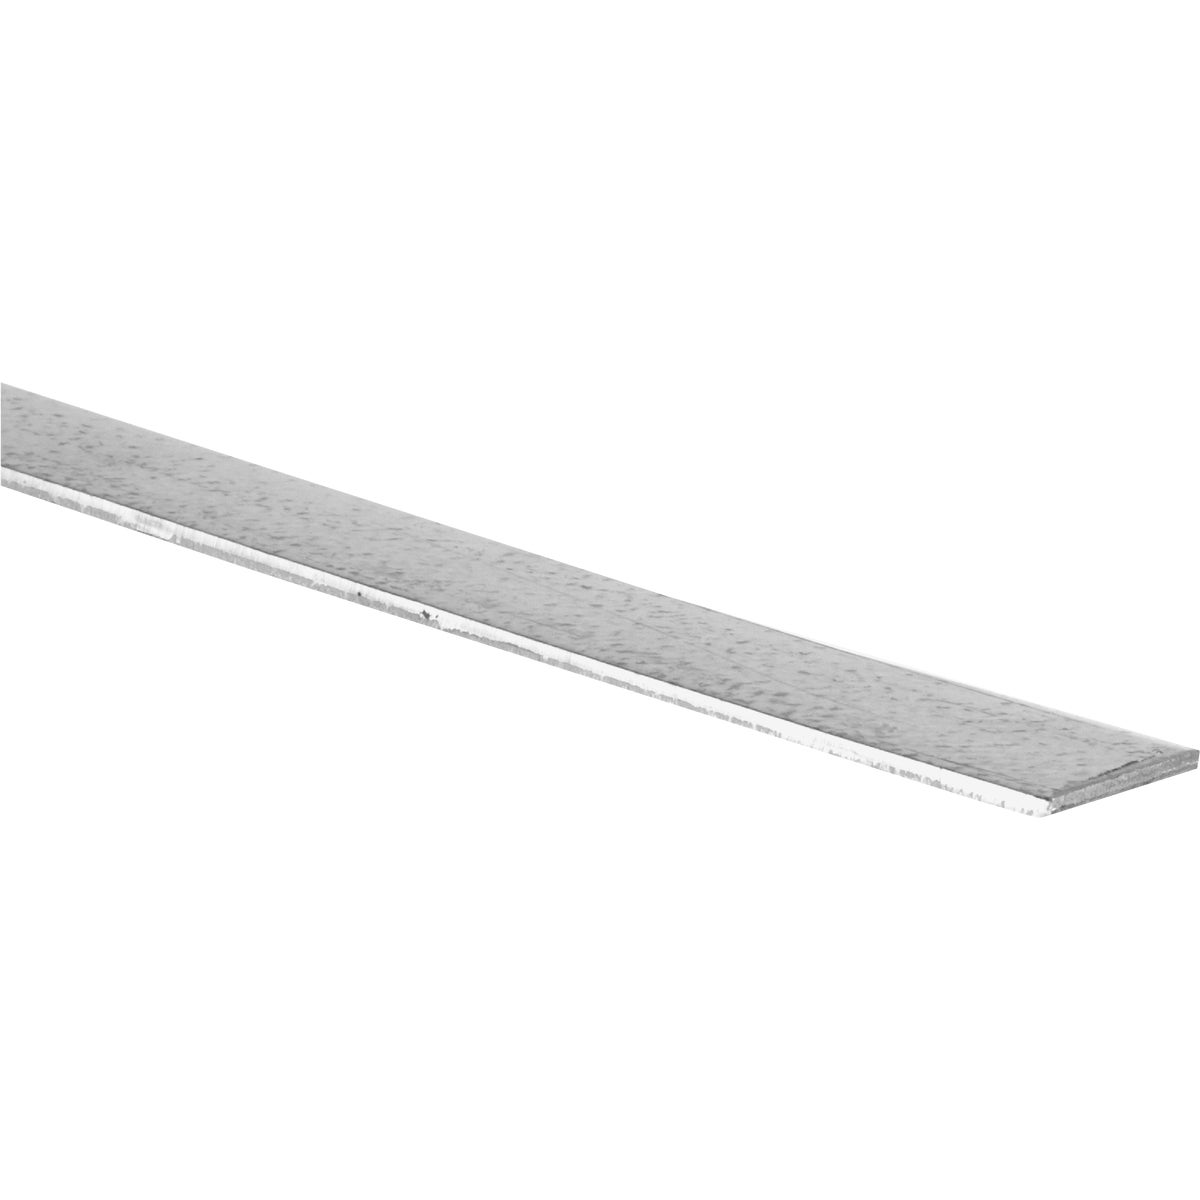 3/4X4' STEEL FLAT PLATE - N179994 by National Mfg Co